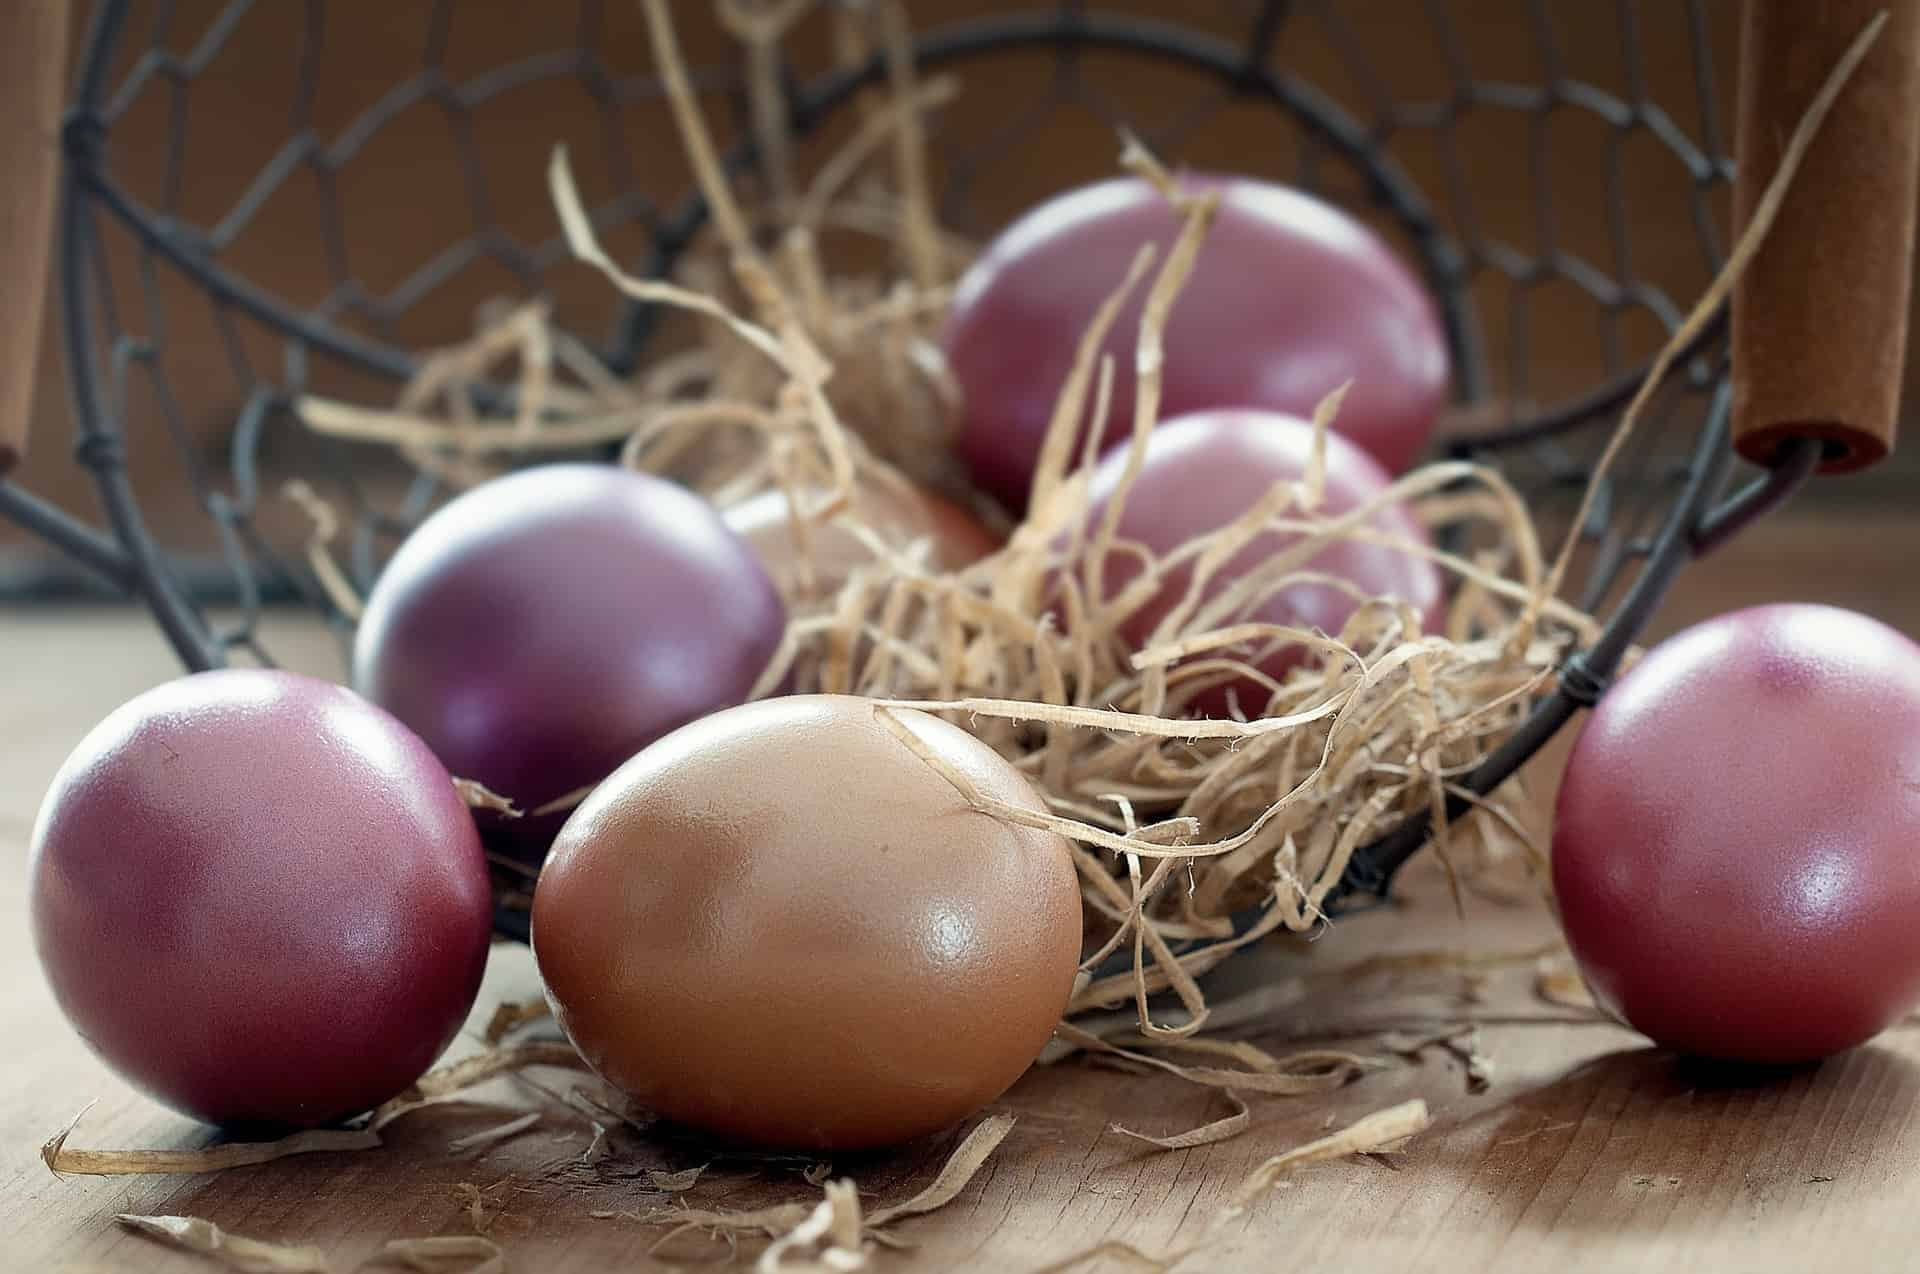 dyed Easter eggs in a black basket